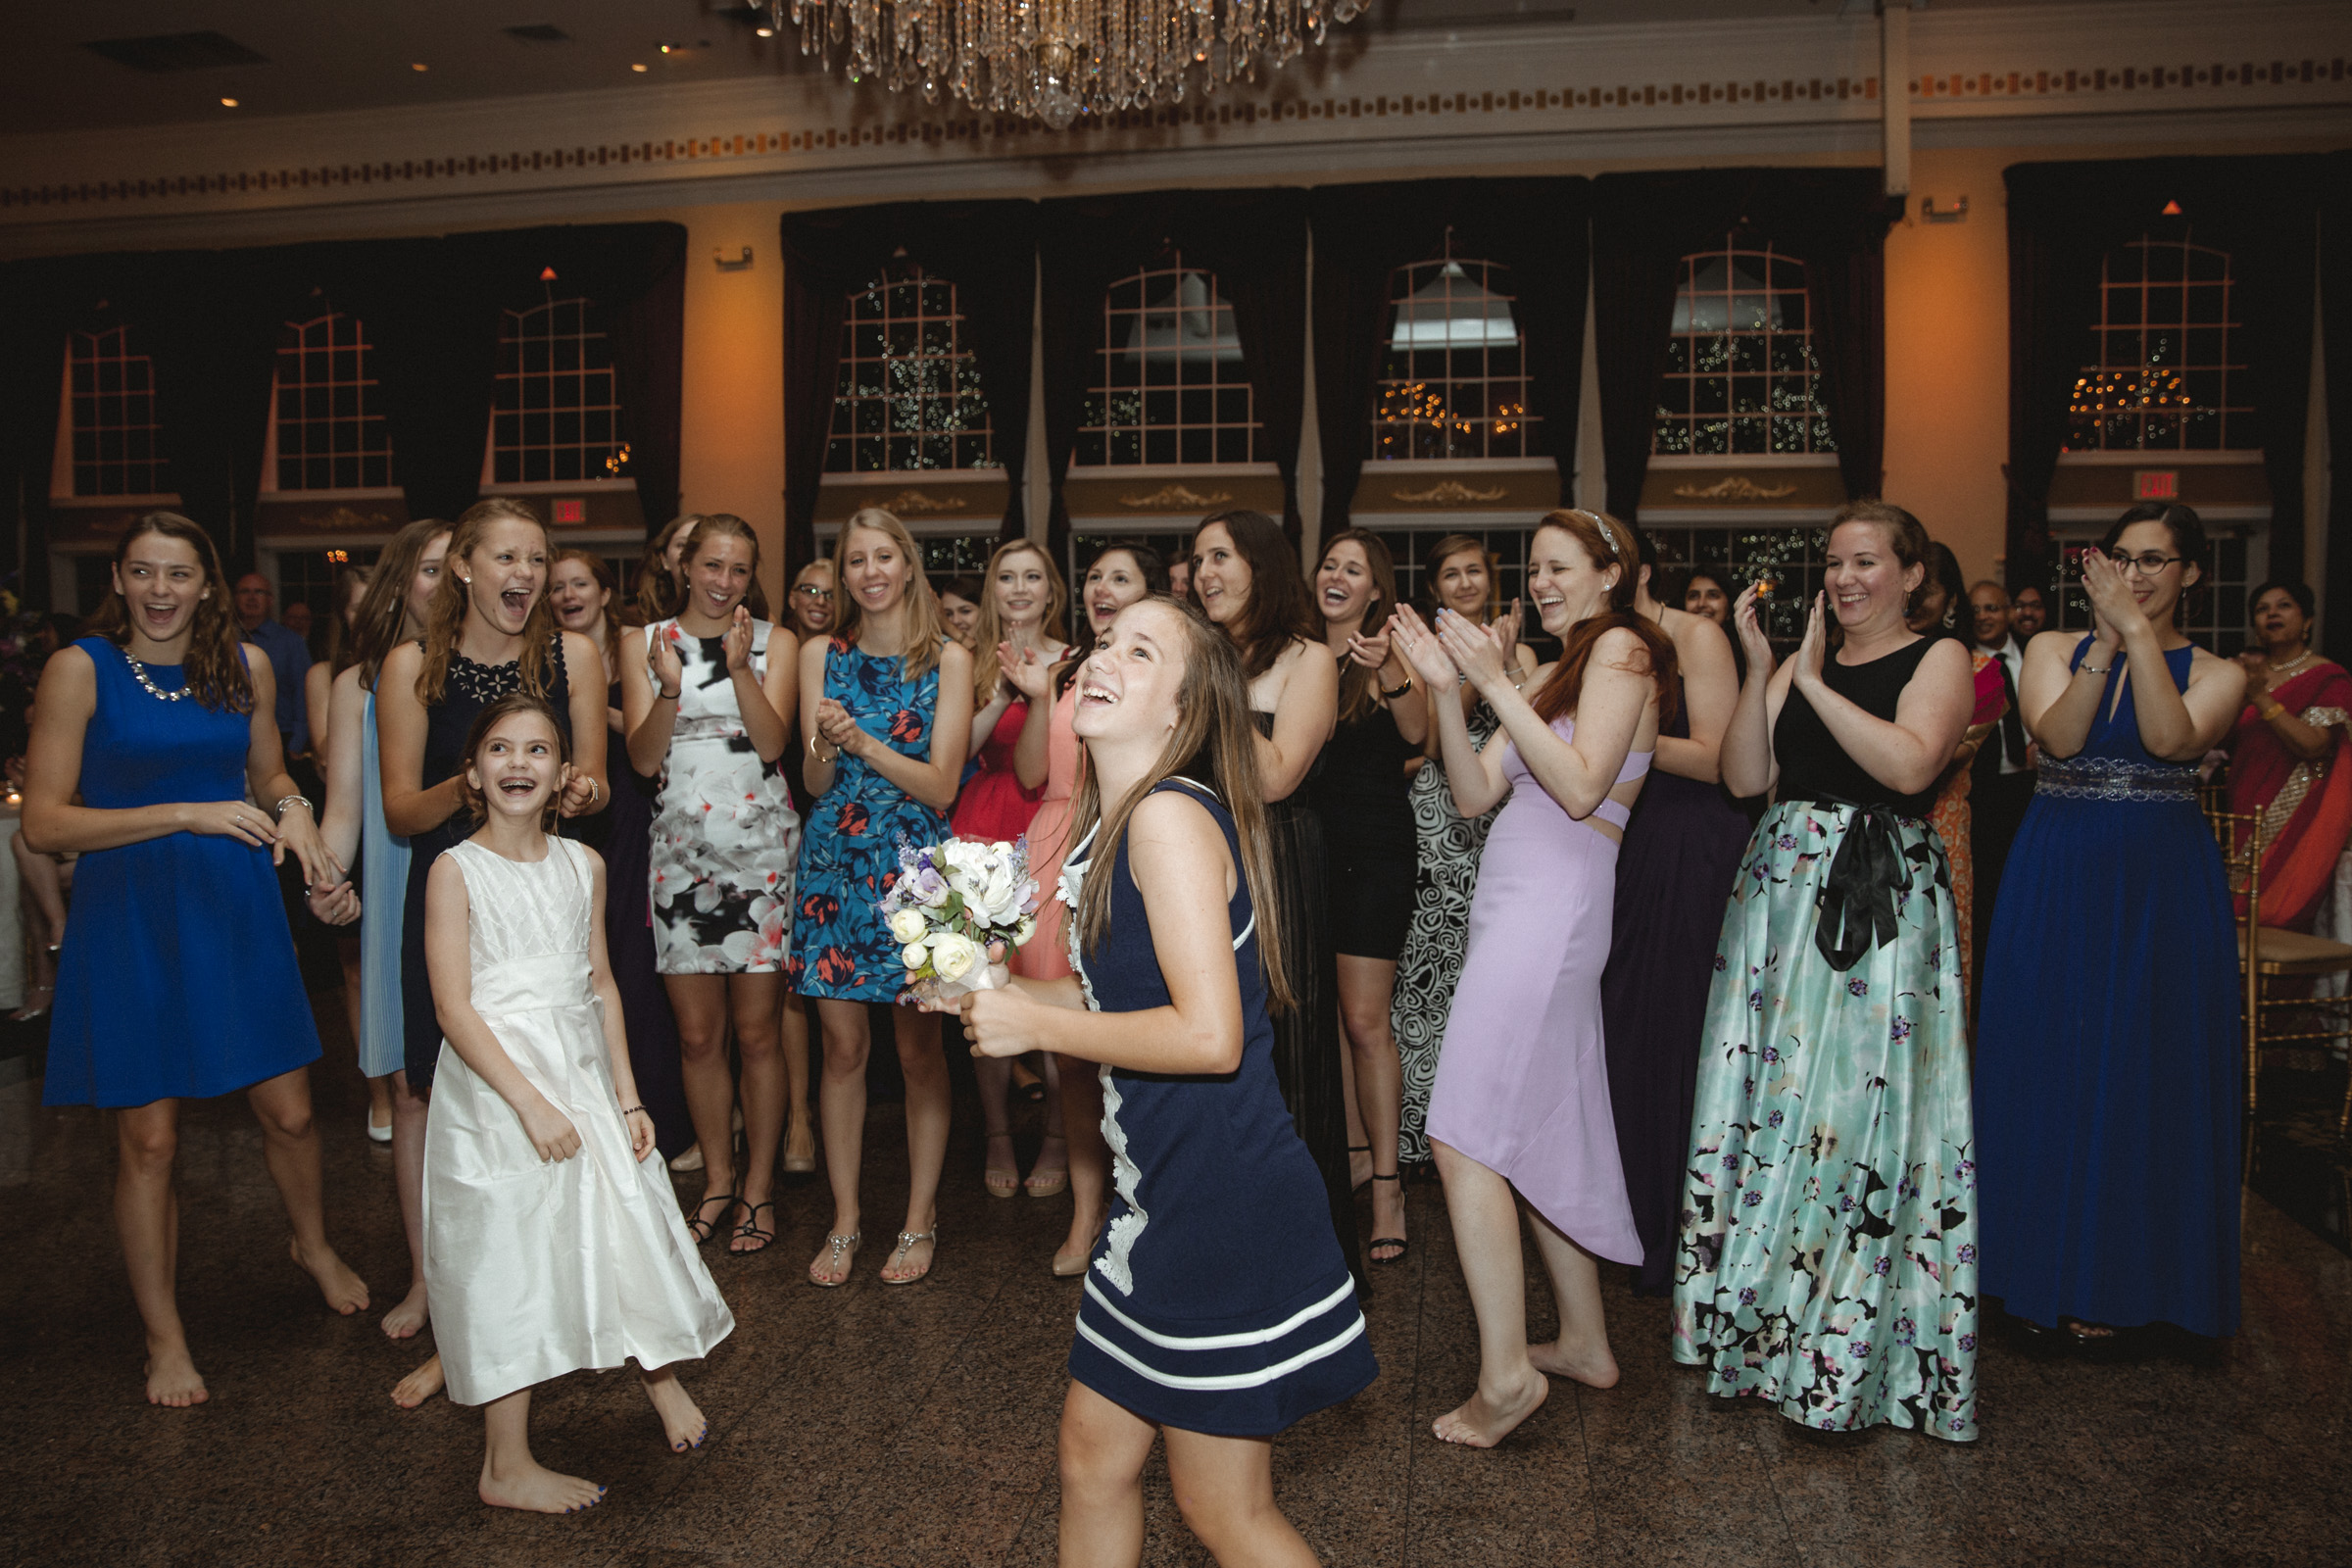 Girl catches the bouquet - Estate at Florentine Gardens wedding - Hudson Valley Wedding - Kelsey & Anish's wedding - Amy Sims Photography